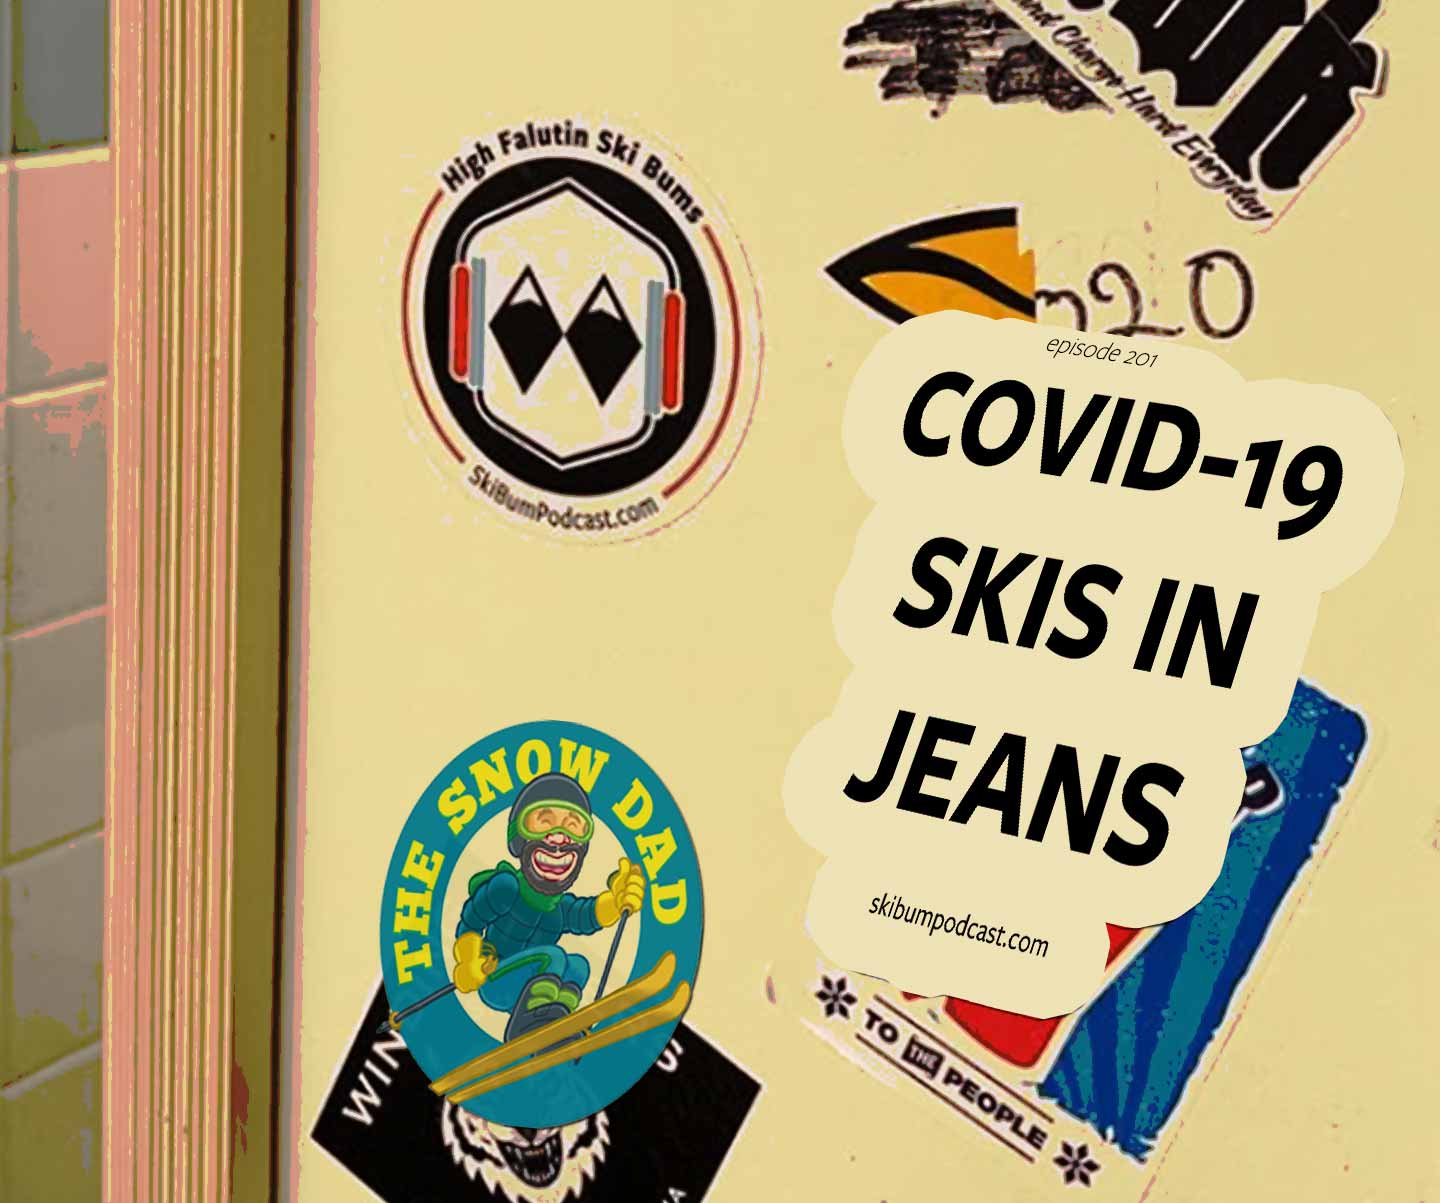 episode 201 - covid-19 skis in jeans